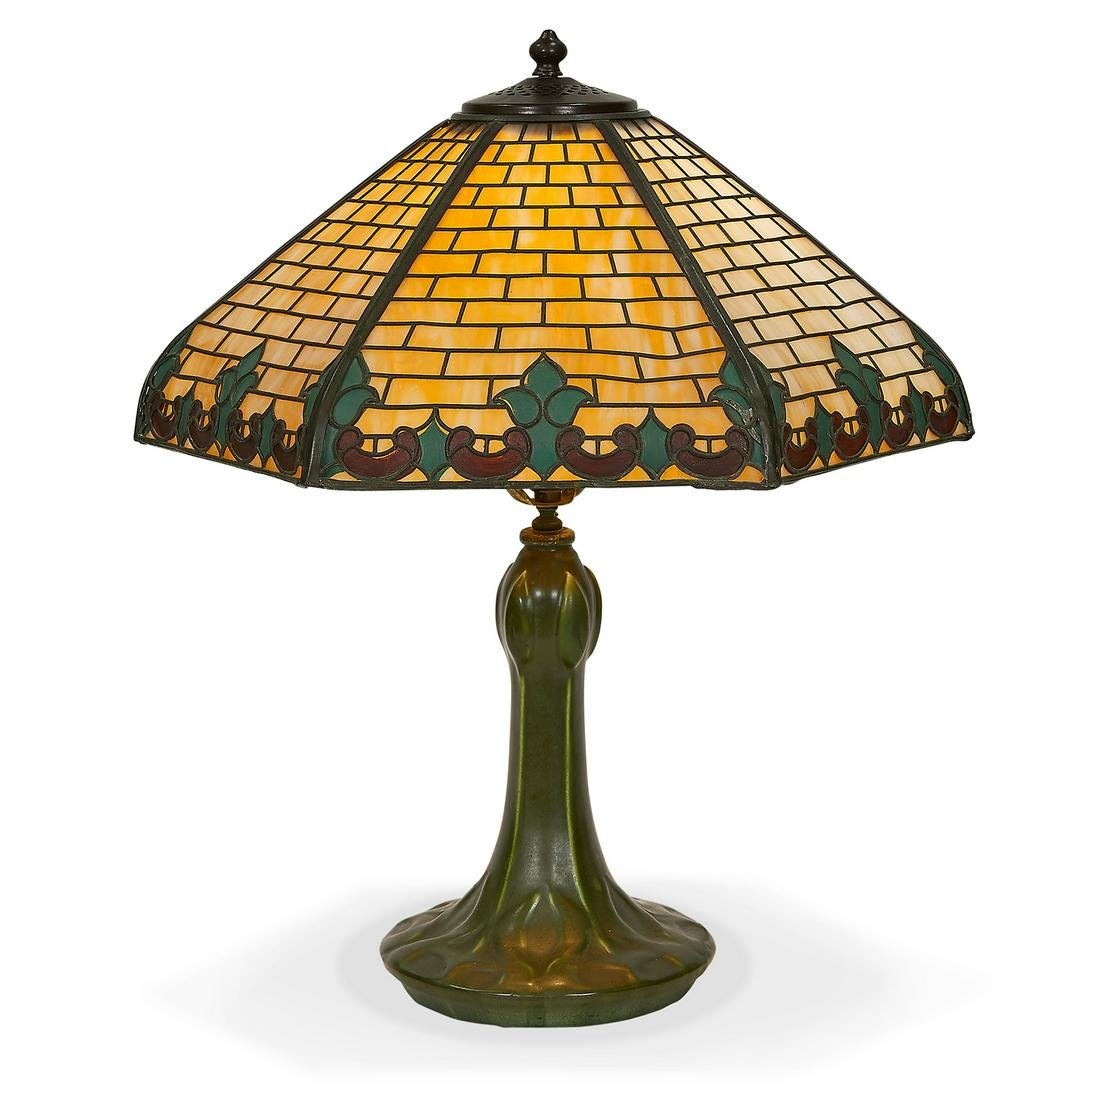 Hampshire Pottery and Handel lamp